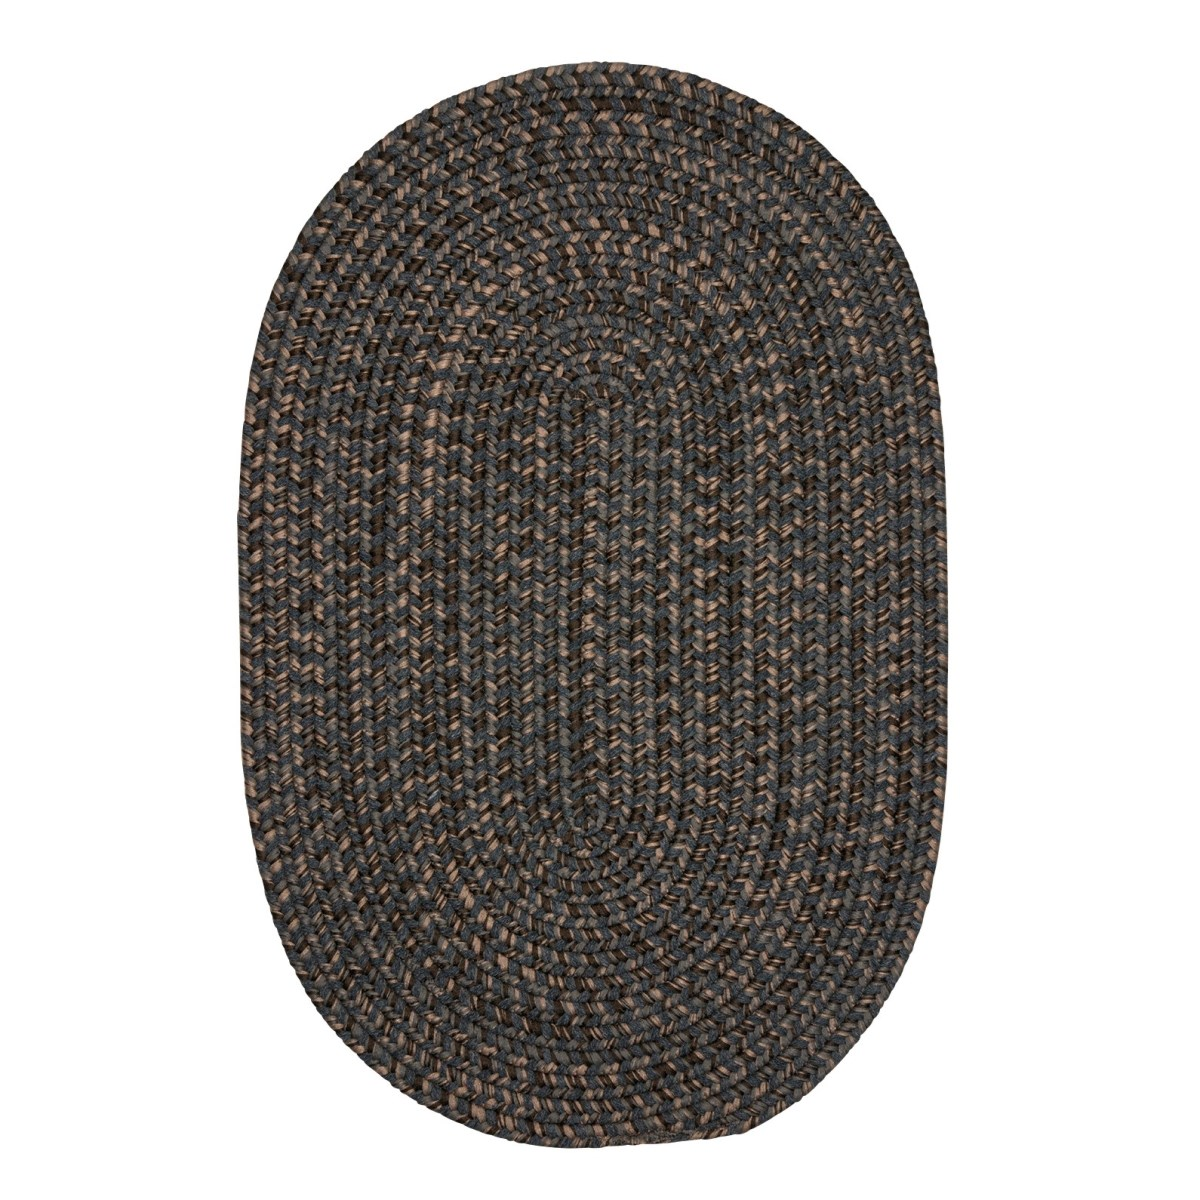 Hayward Charcoal Outdoor Braided Oval Rugs